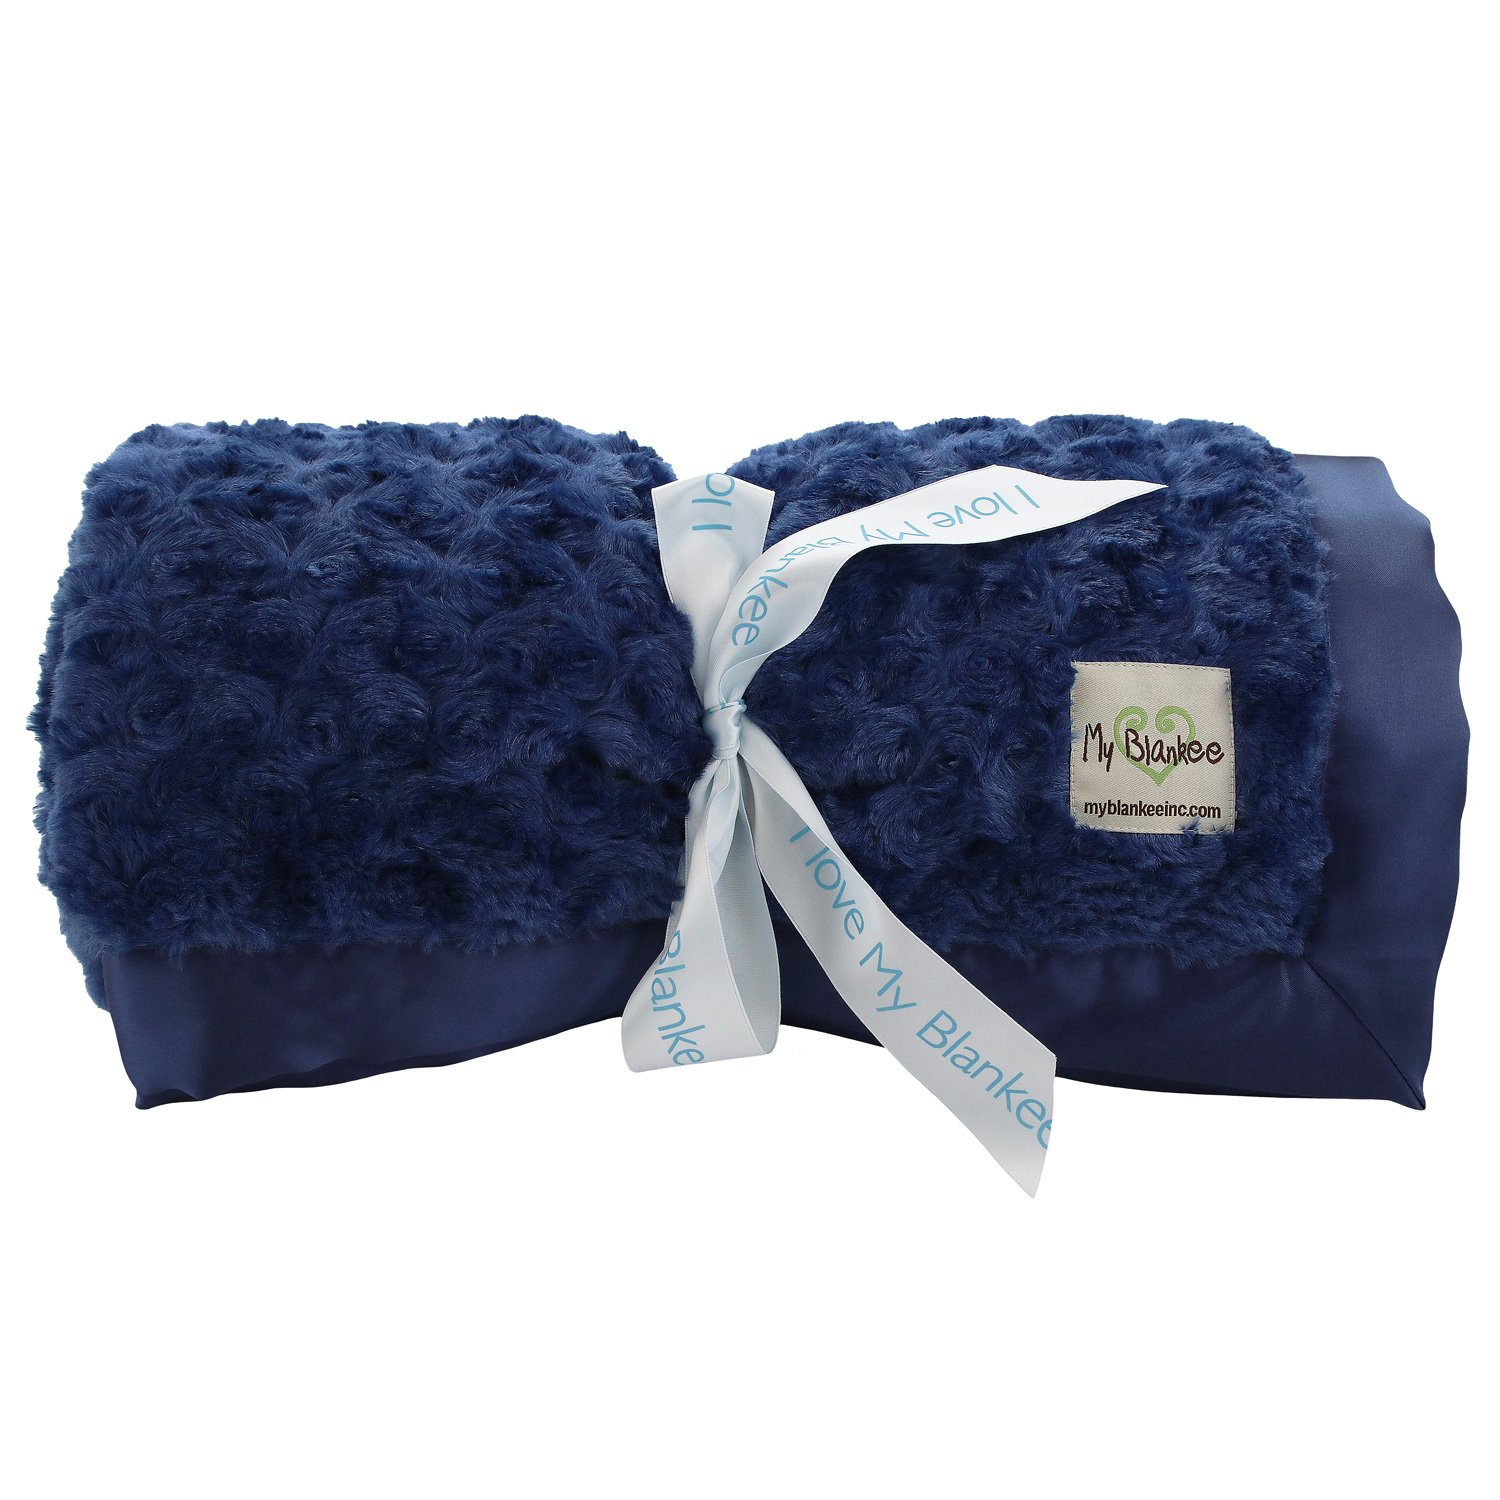 My Blankee Snail Luxe Extra Throw Blanket with Flat Satin Border, Navy, 59''X85''